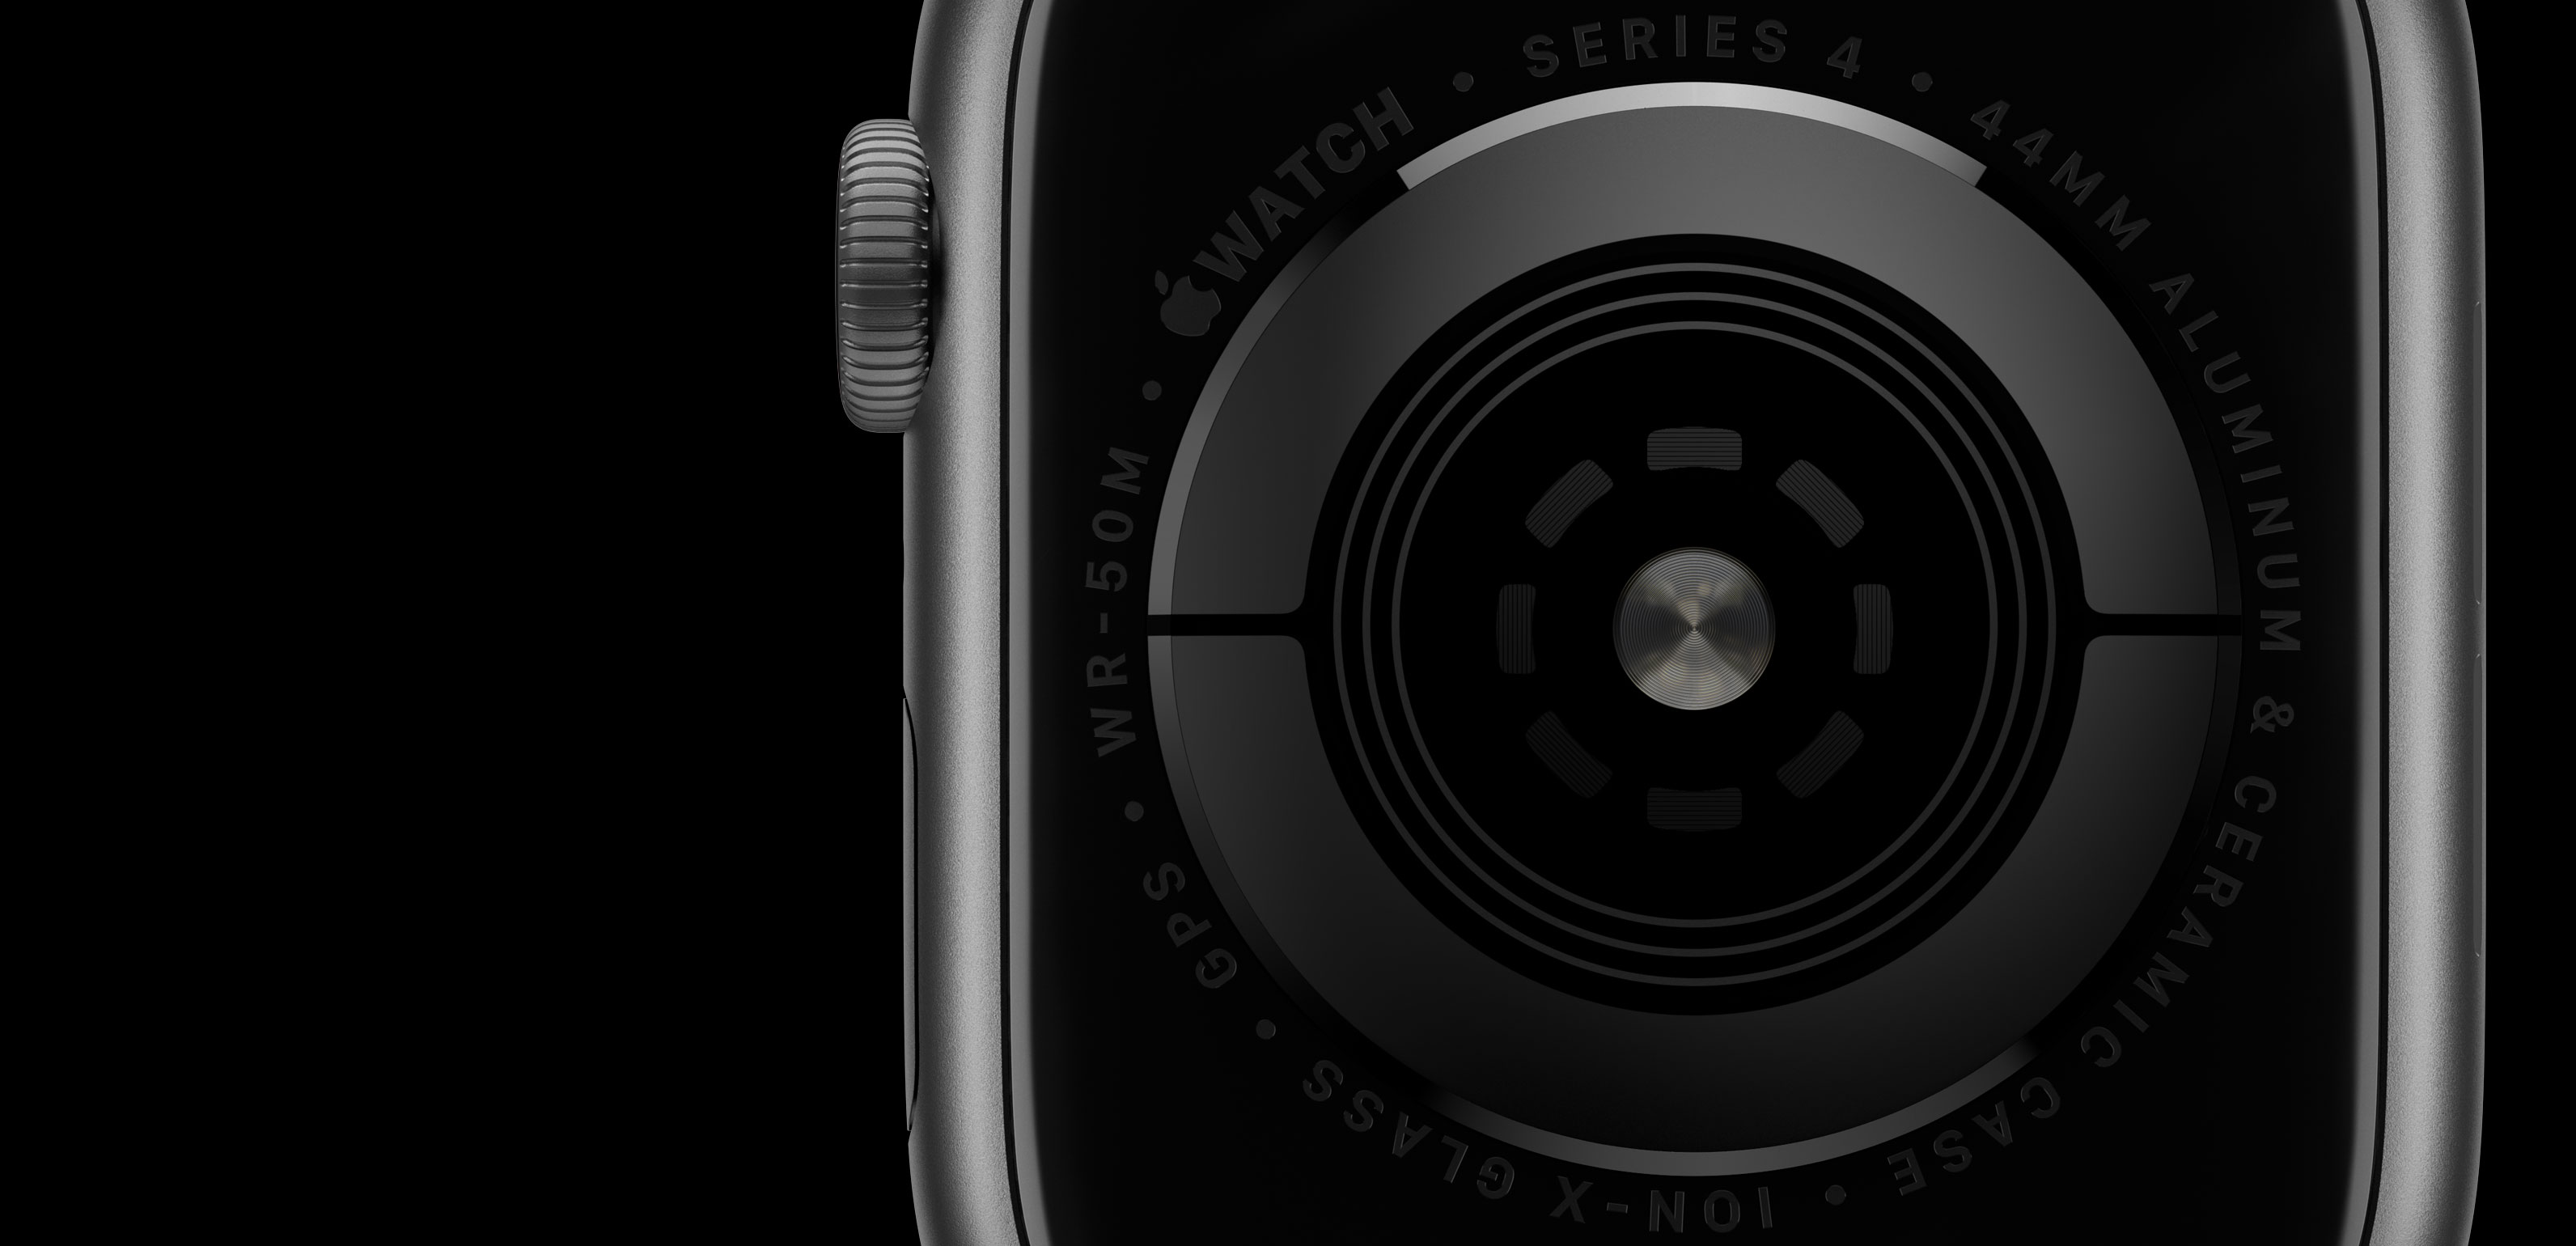 Electrodos del Appel Watch series 4